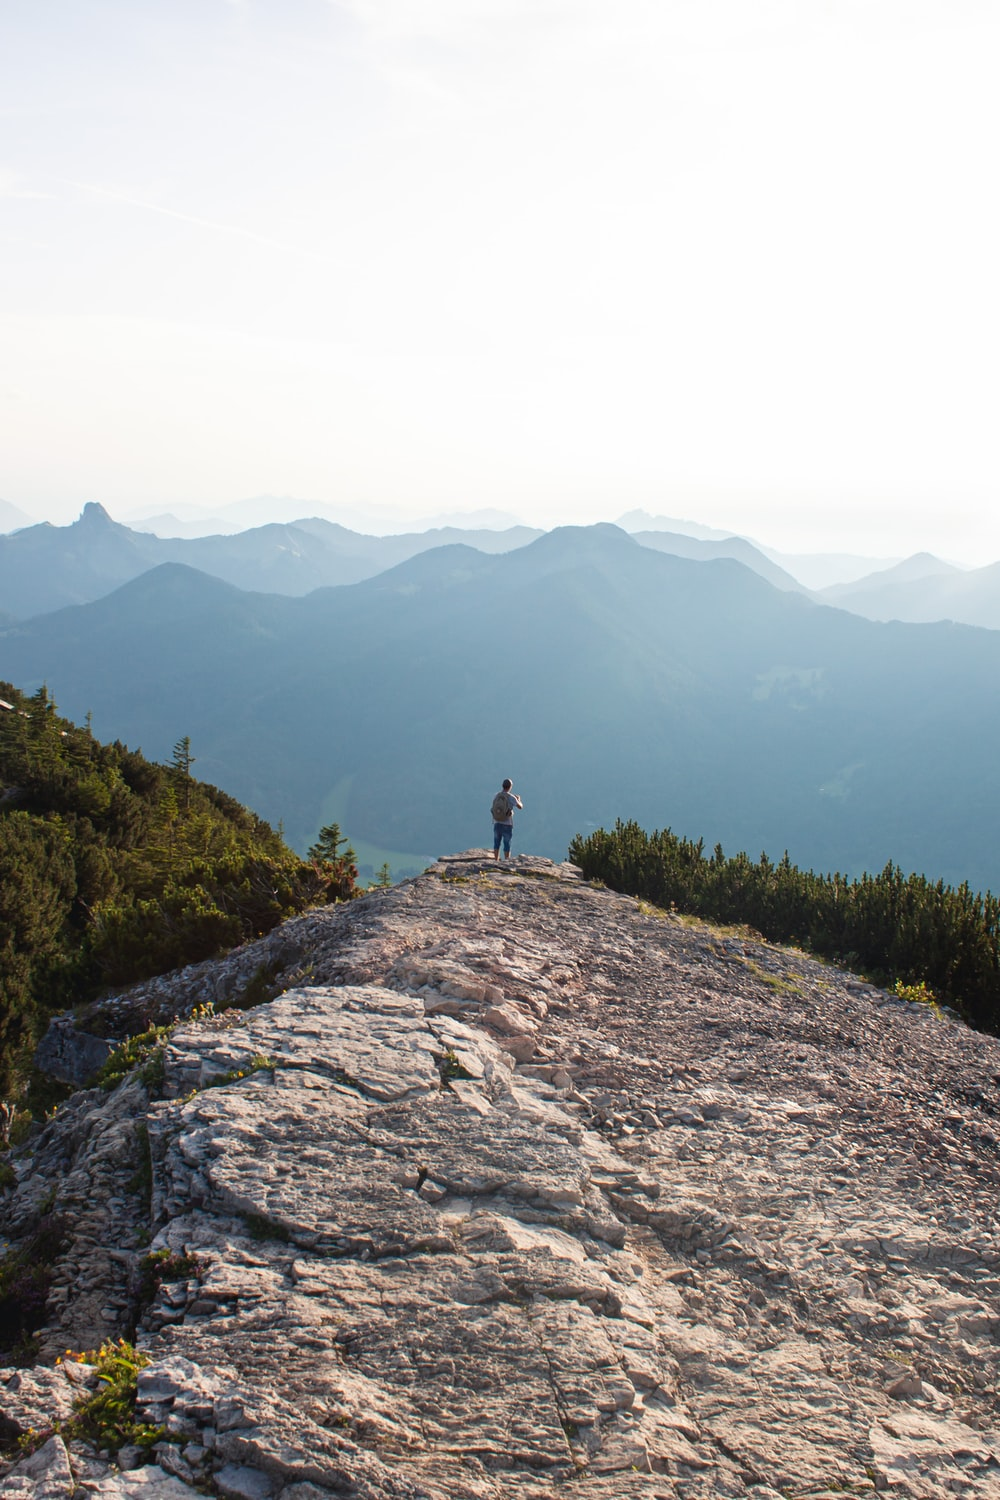 person standing on rock mountain during daytime